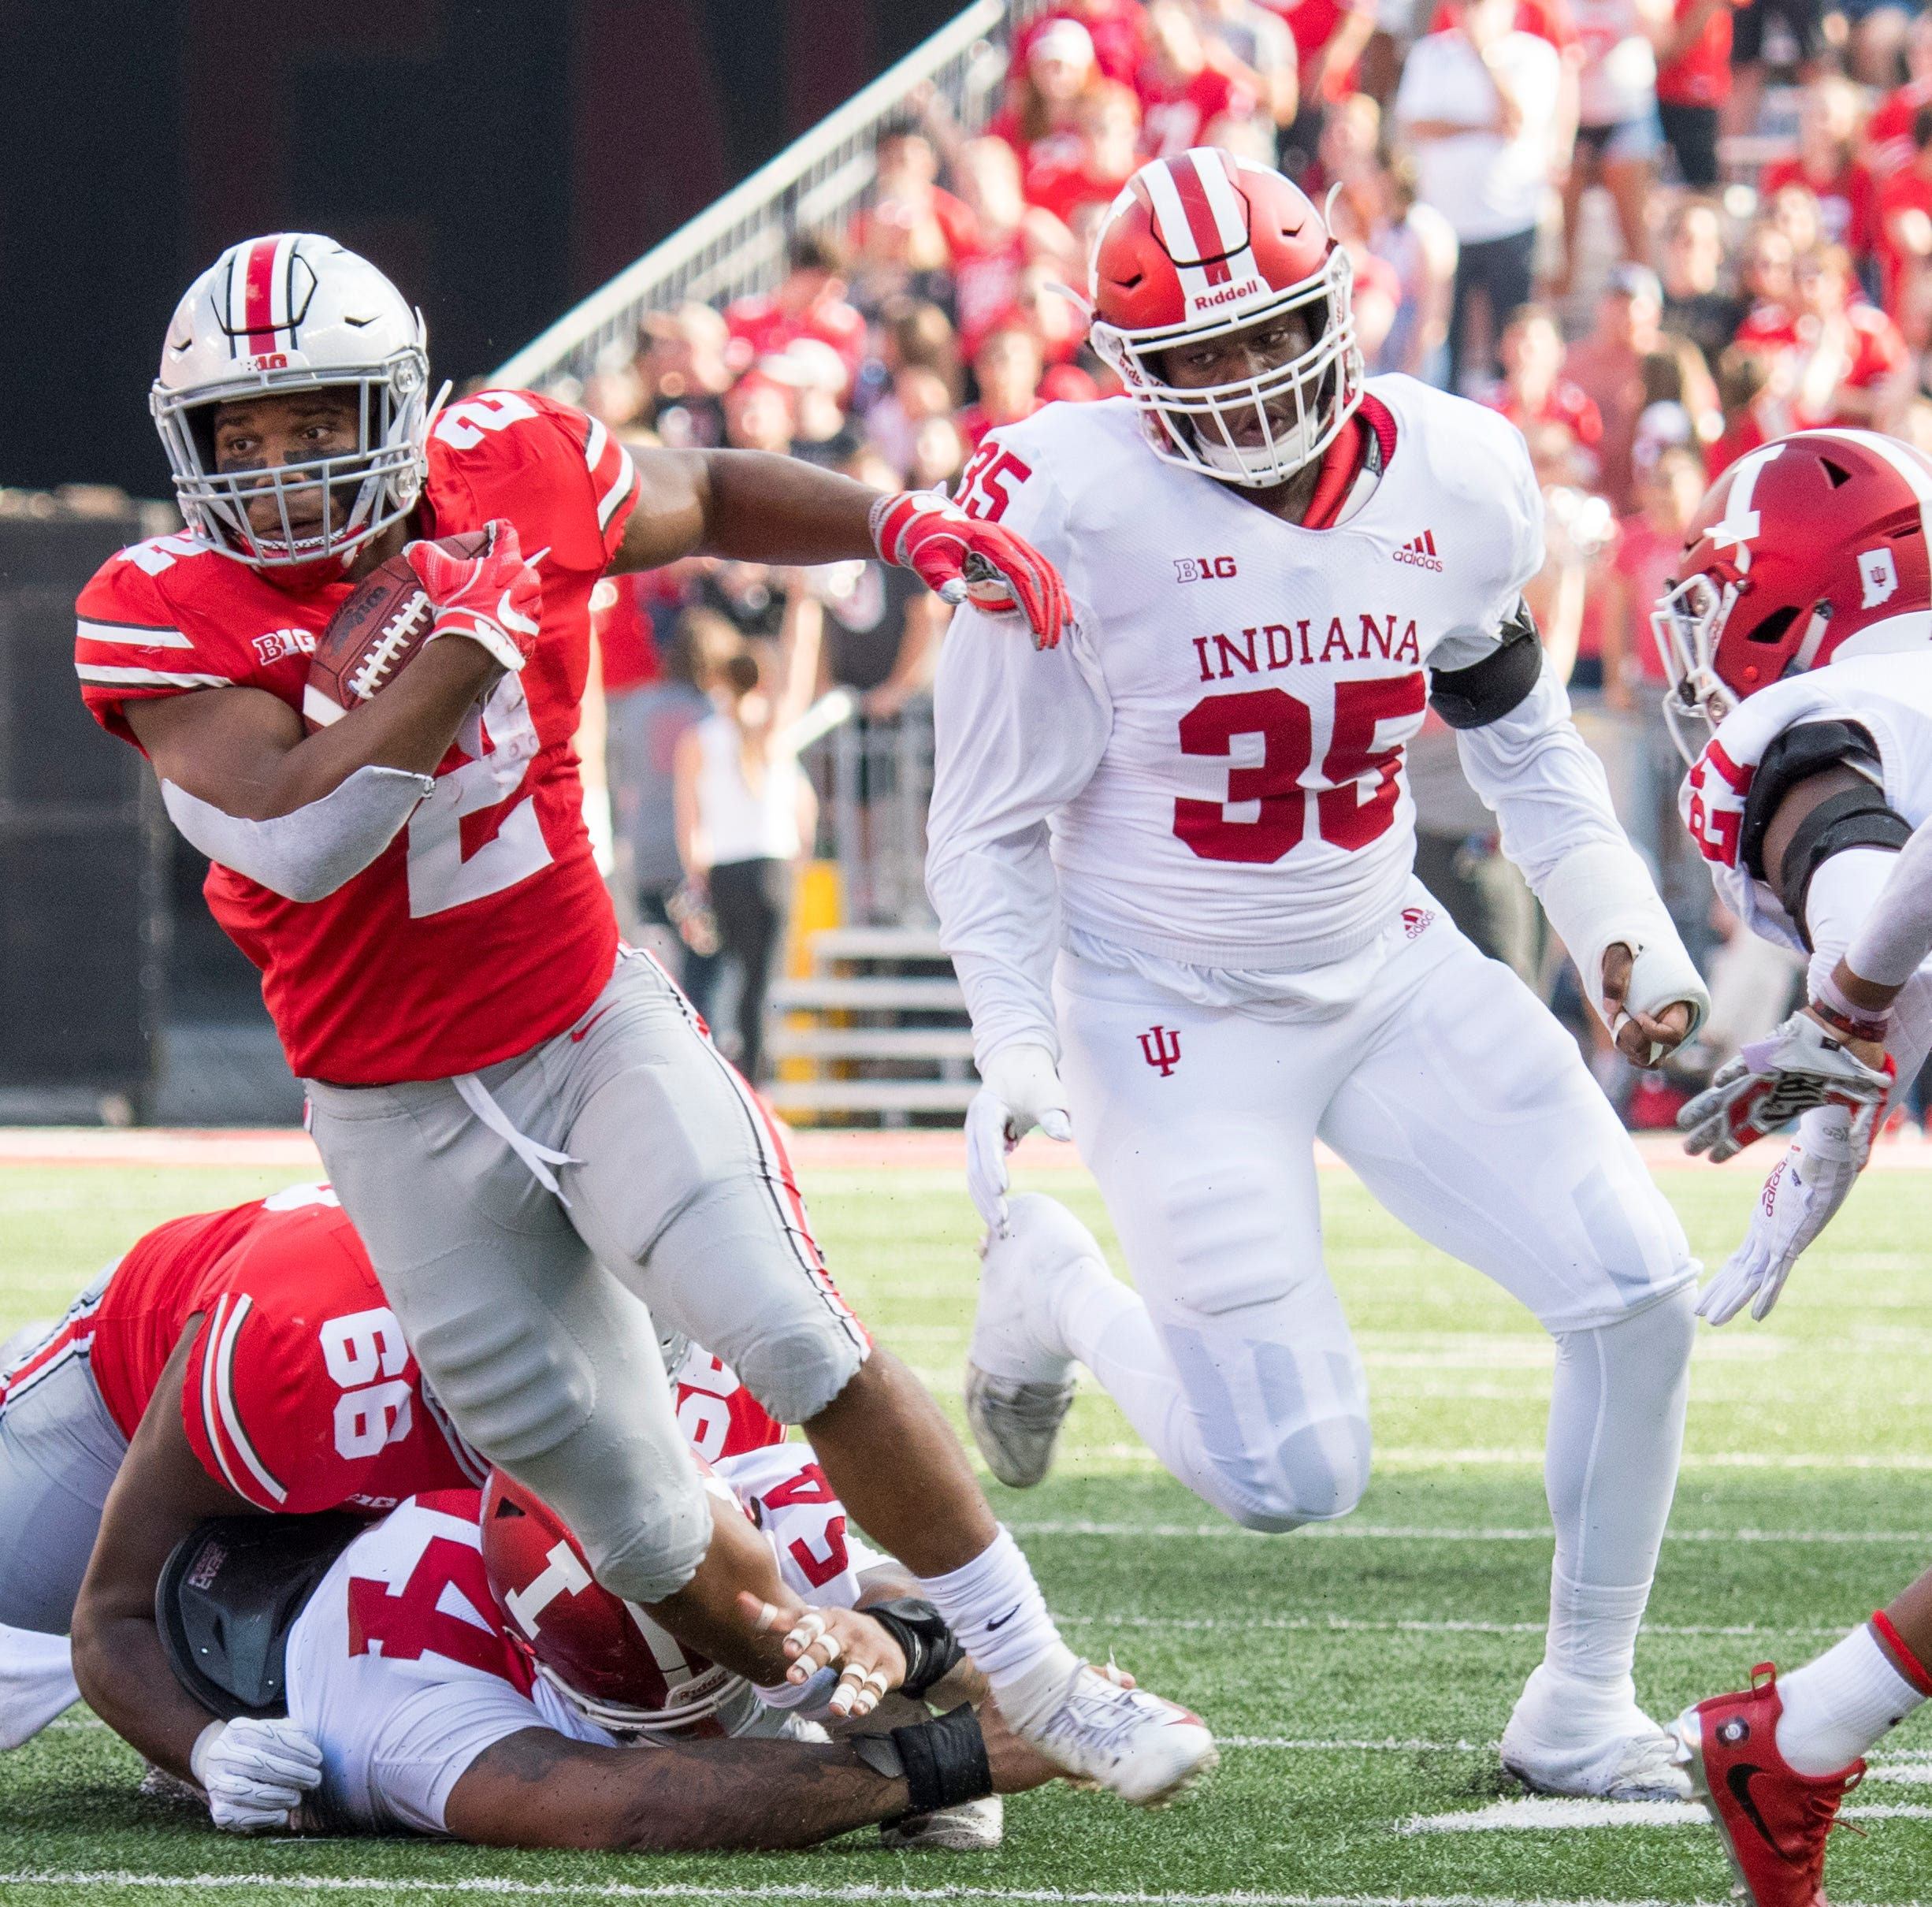 Running on empty: Buckeyes need to balance attack